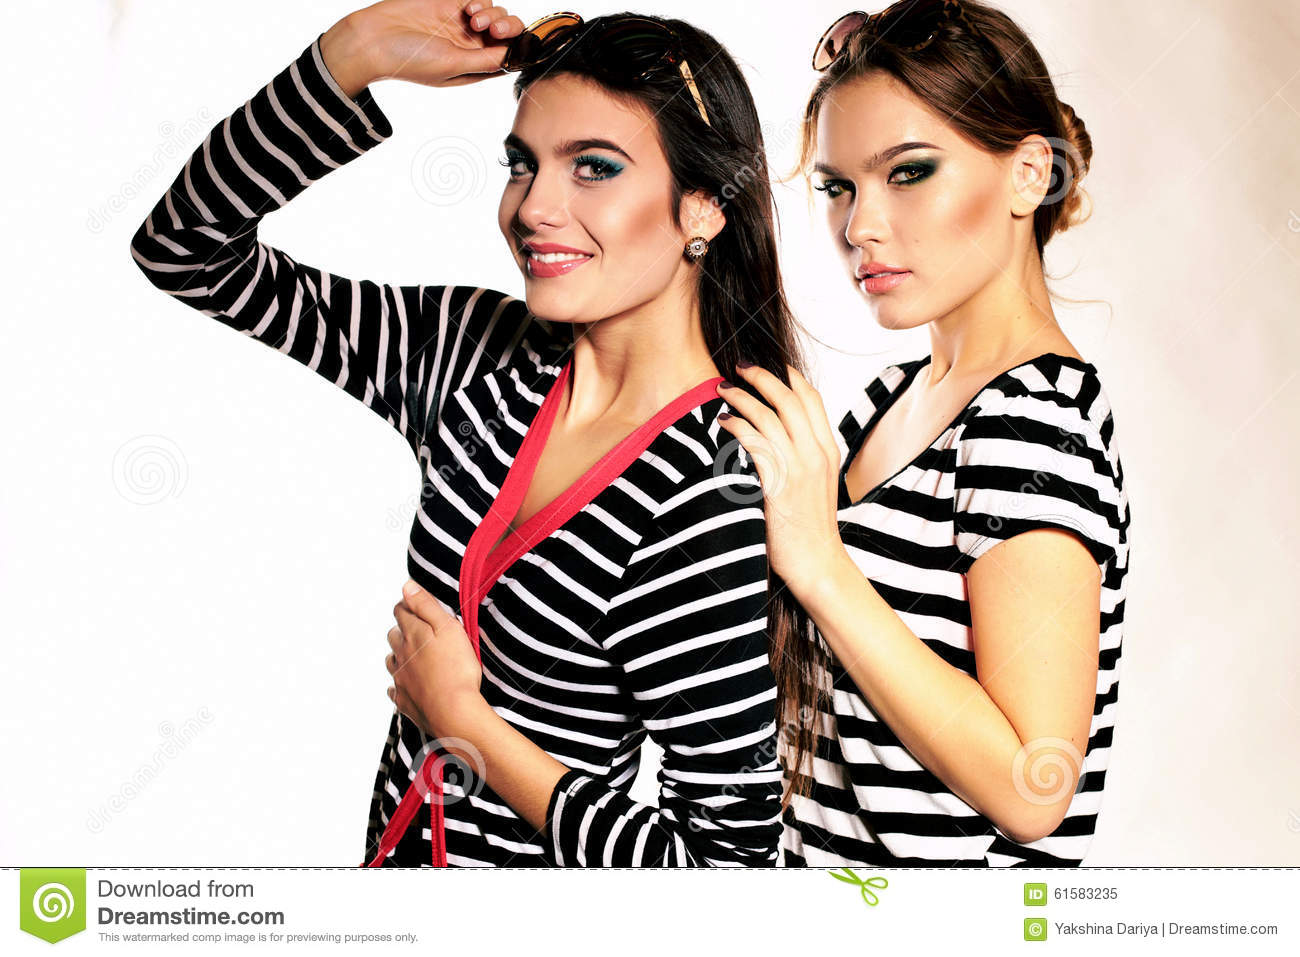 Women With Long Hair And Bright Makeup Wears Striped